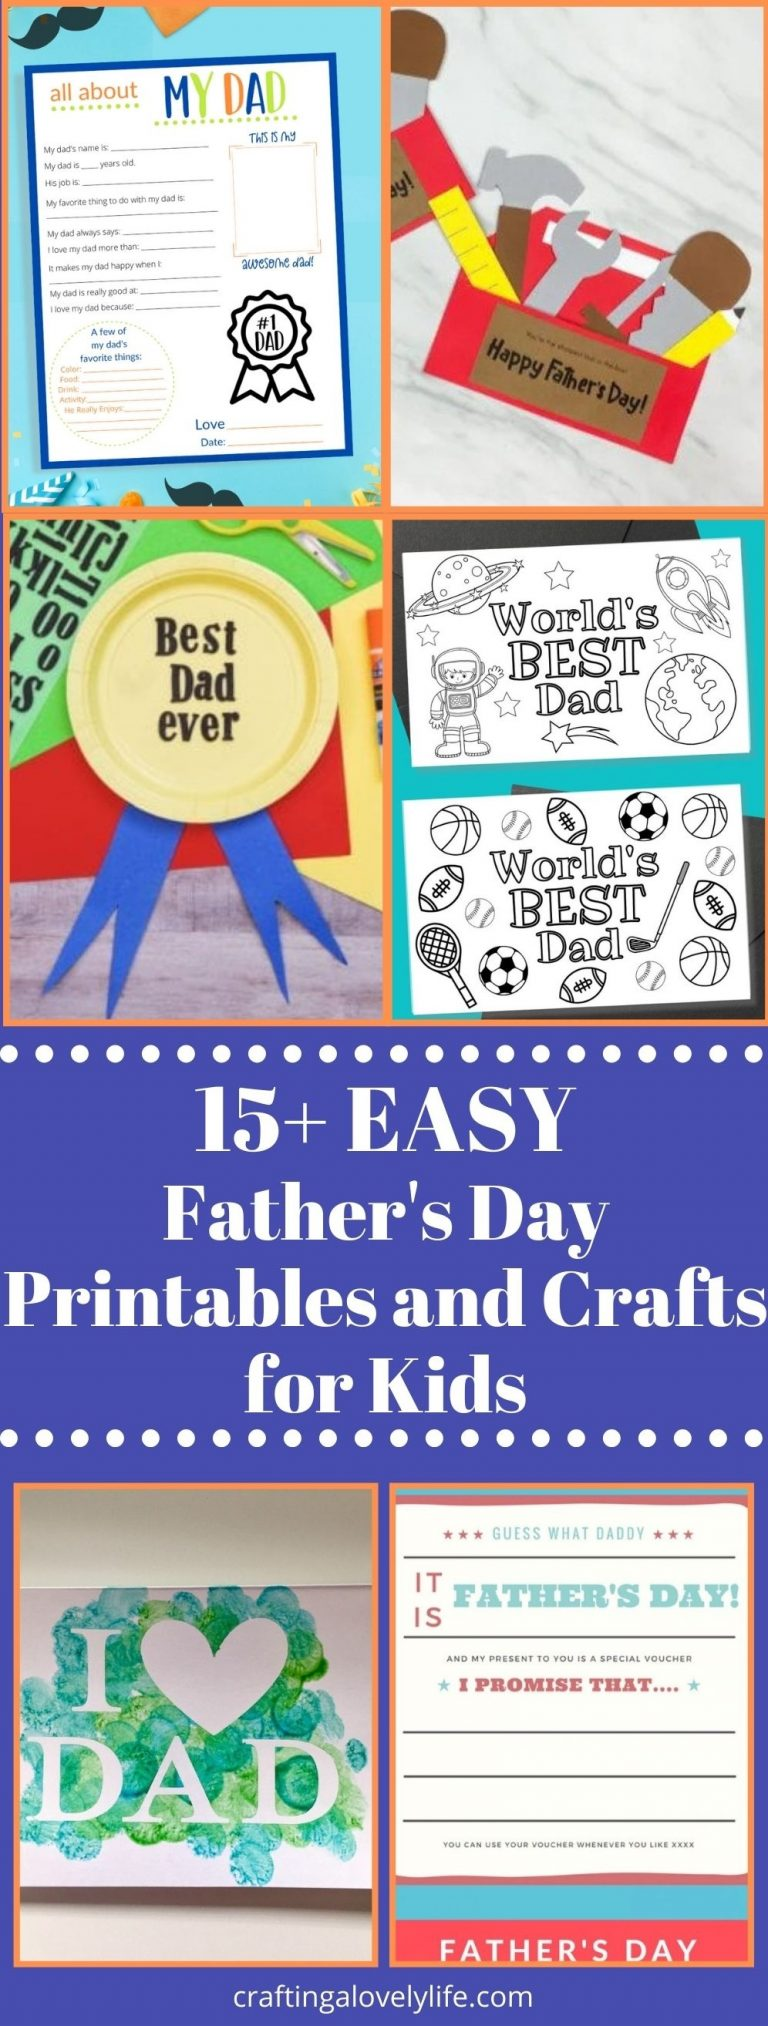 15+ Easy Father's Day Crafts for Kids